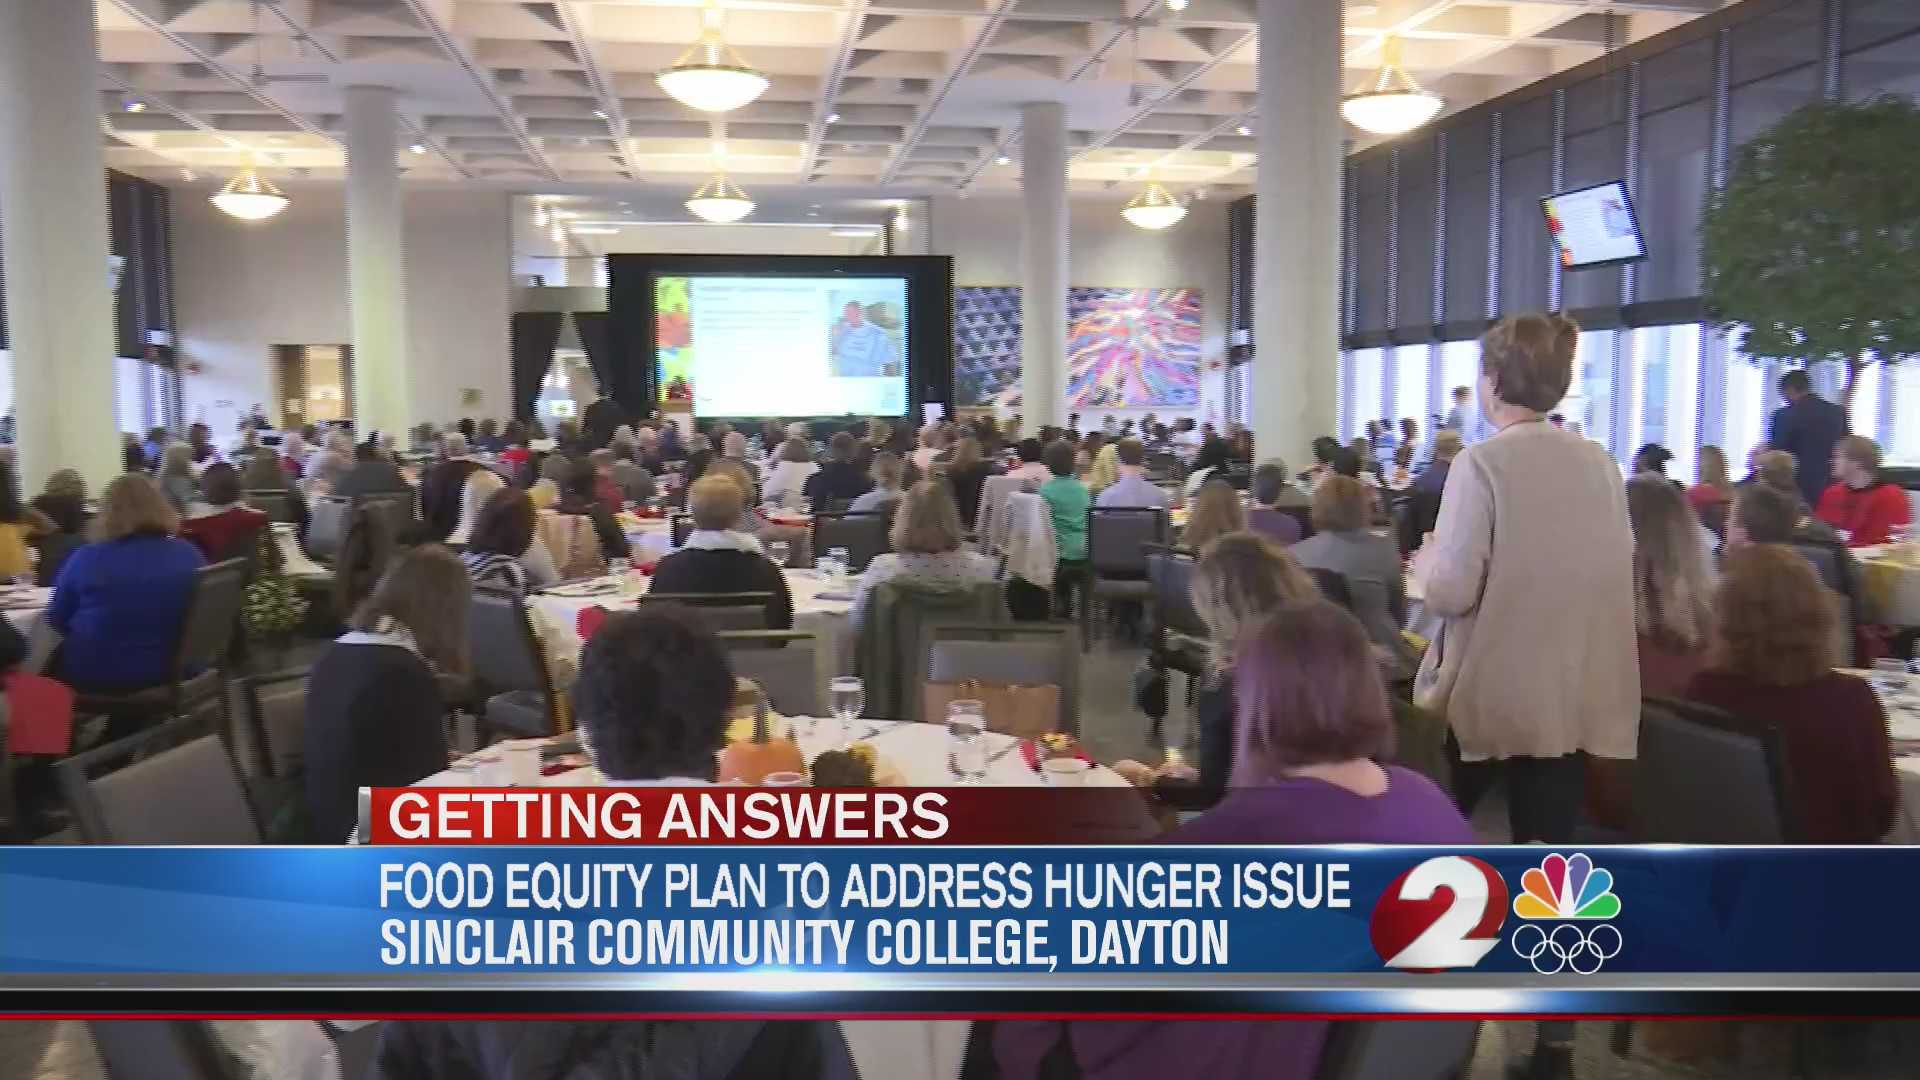 Food equity plan to address hunger issue